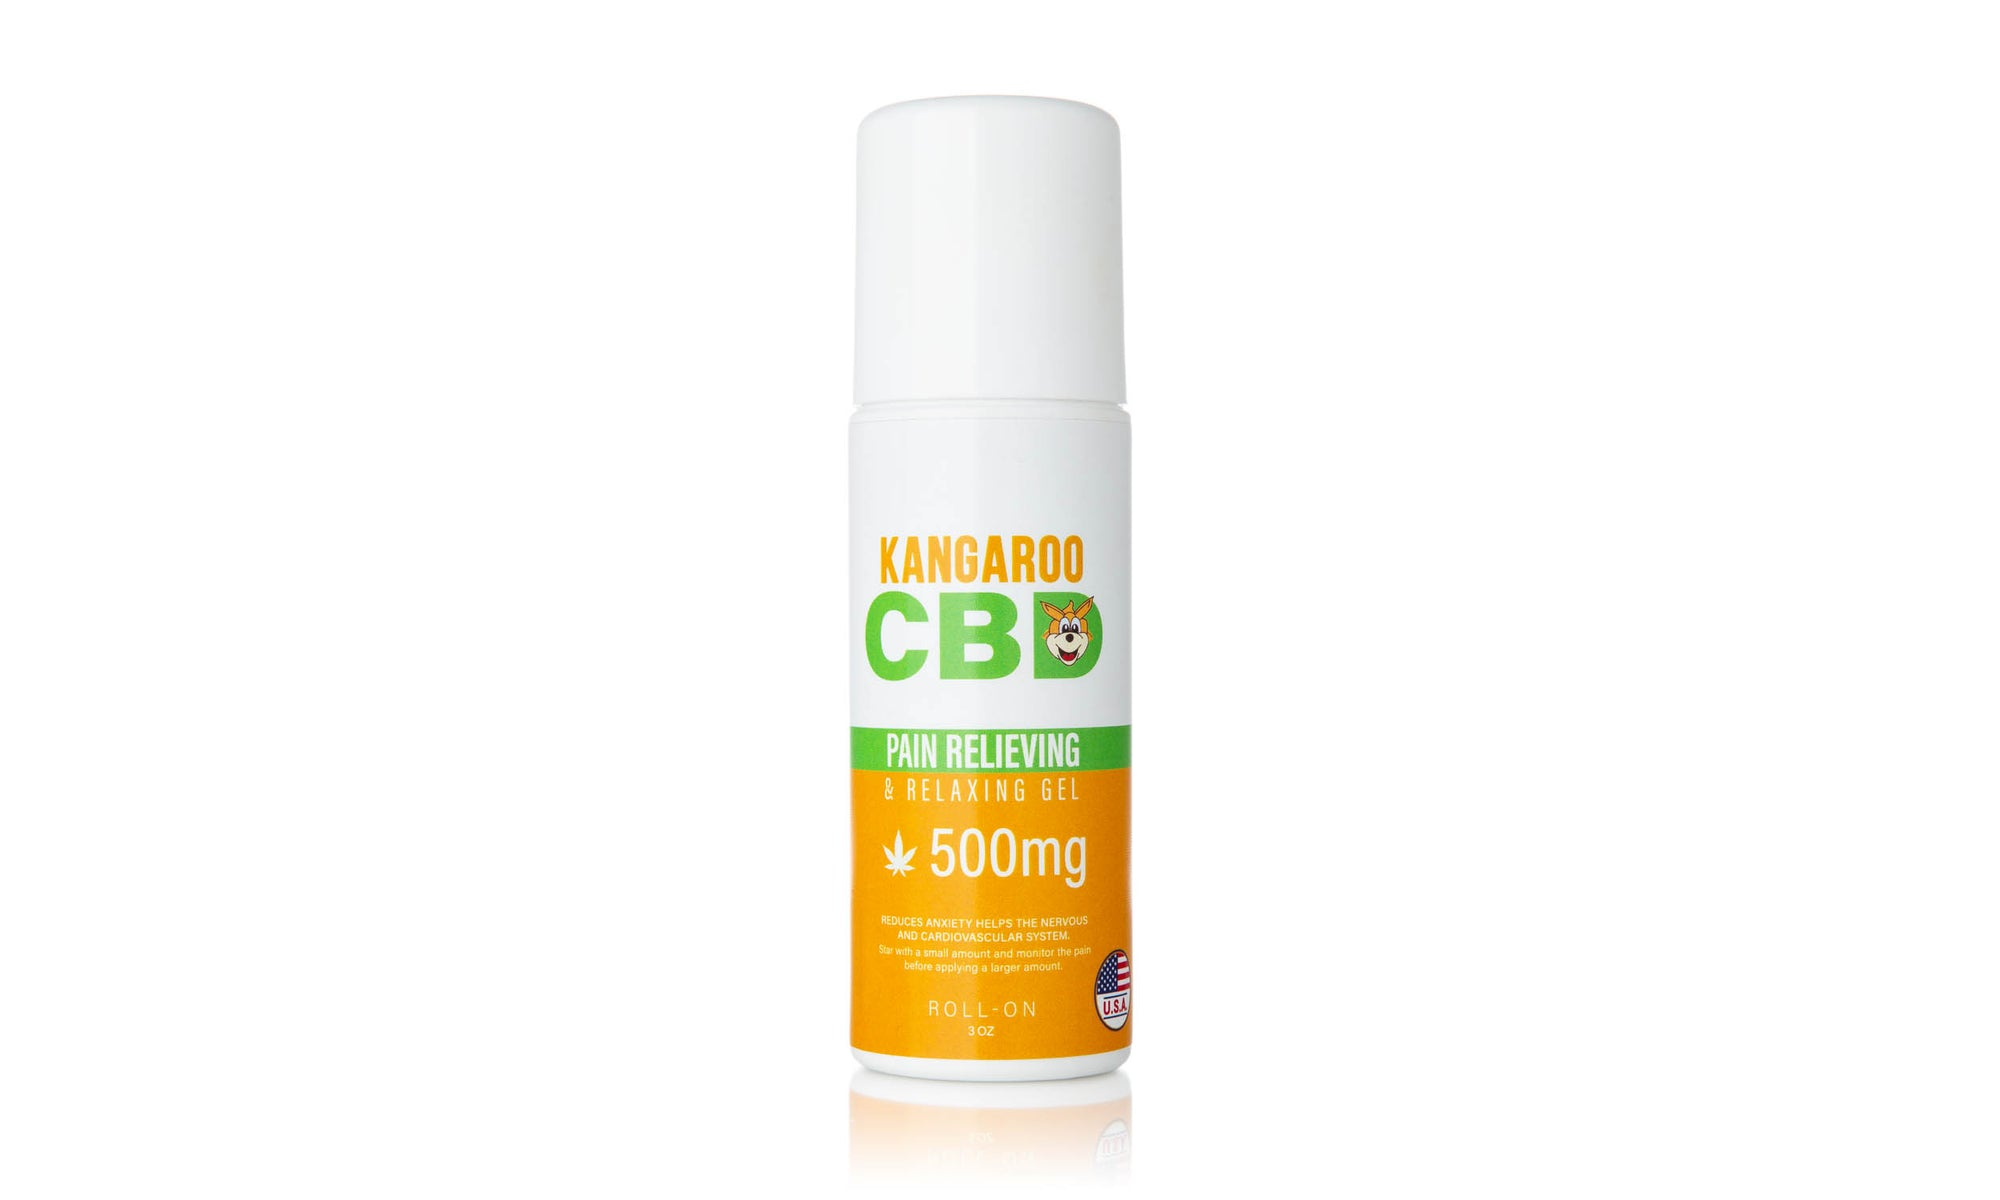 Kangaroo CBD Pain Relief Roll-on 500MG